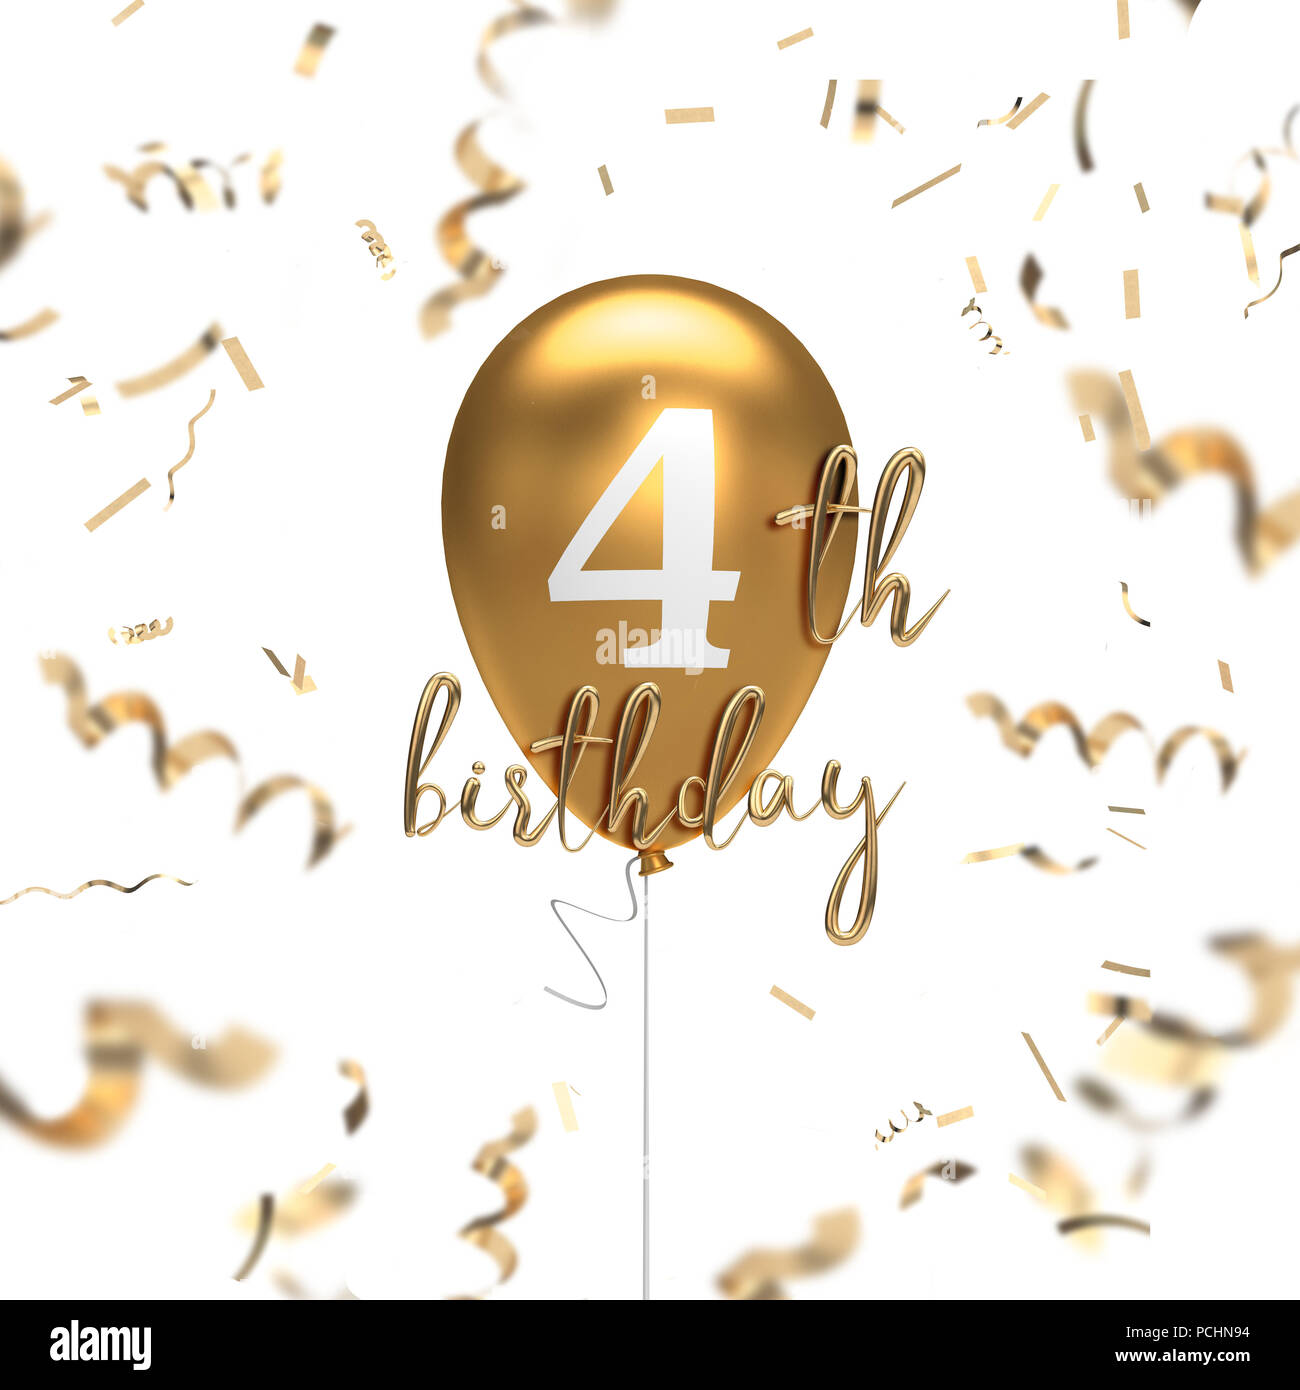 Happy 4th Birthday Gold Balloon Greeting Background 3D Rendering